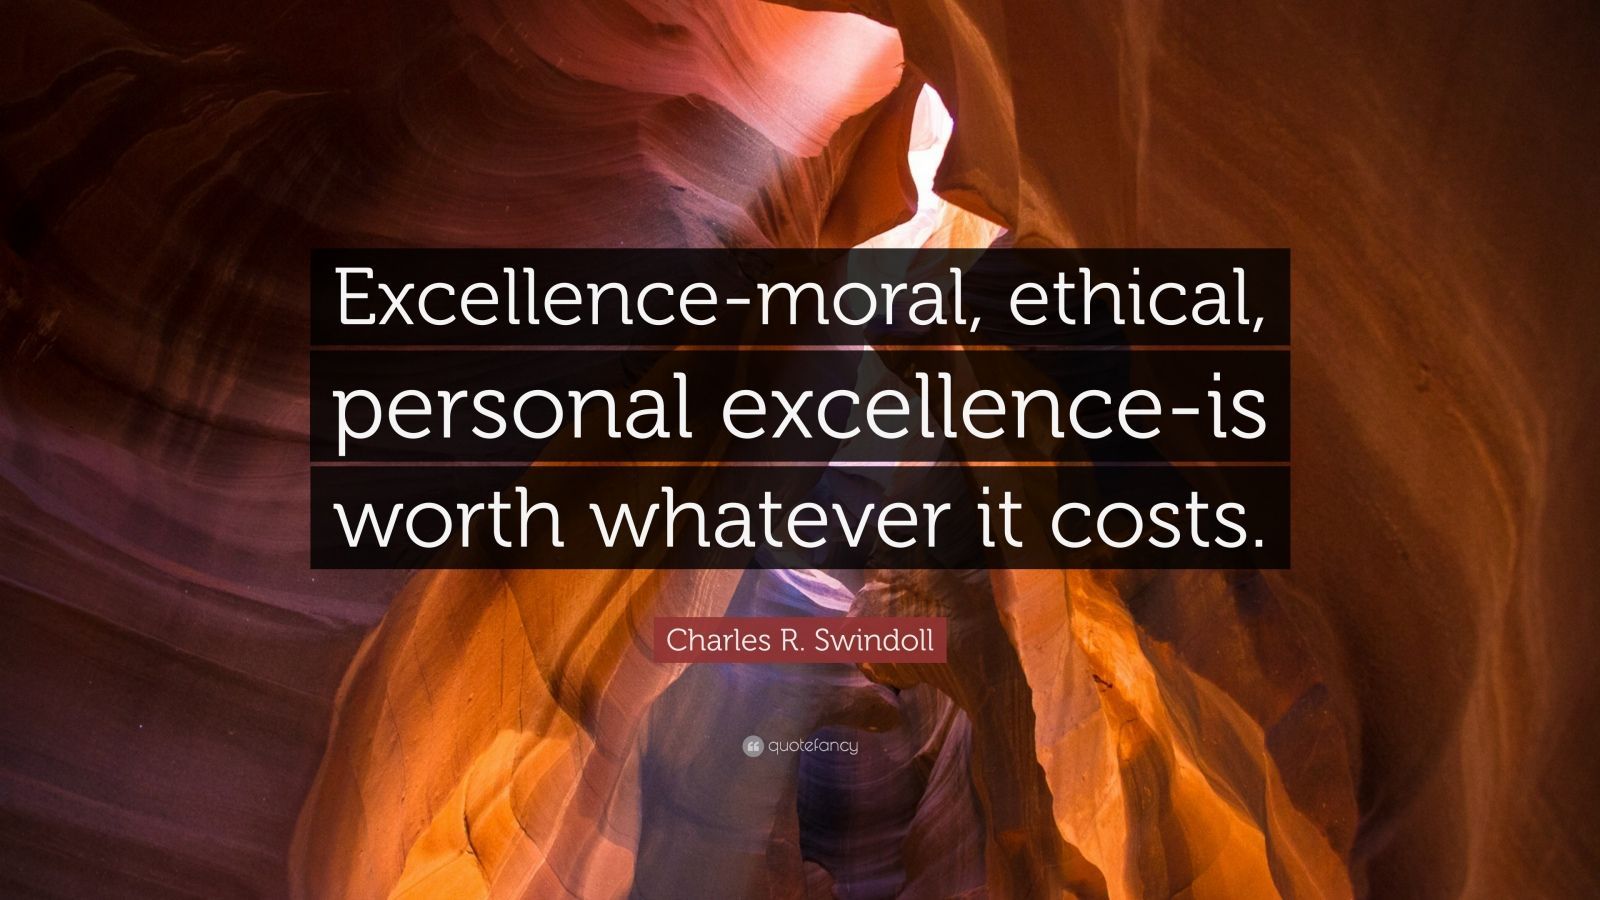 """Charles R. Swindoll Quote: """"Excellence-moral, ethical, personal excellence-is worth whatever it costs."""""""